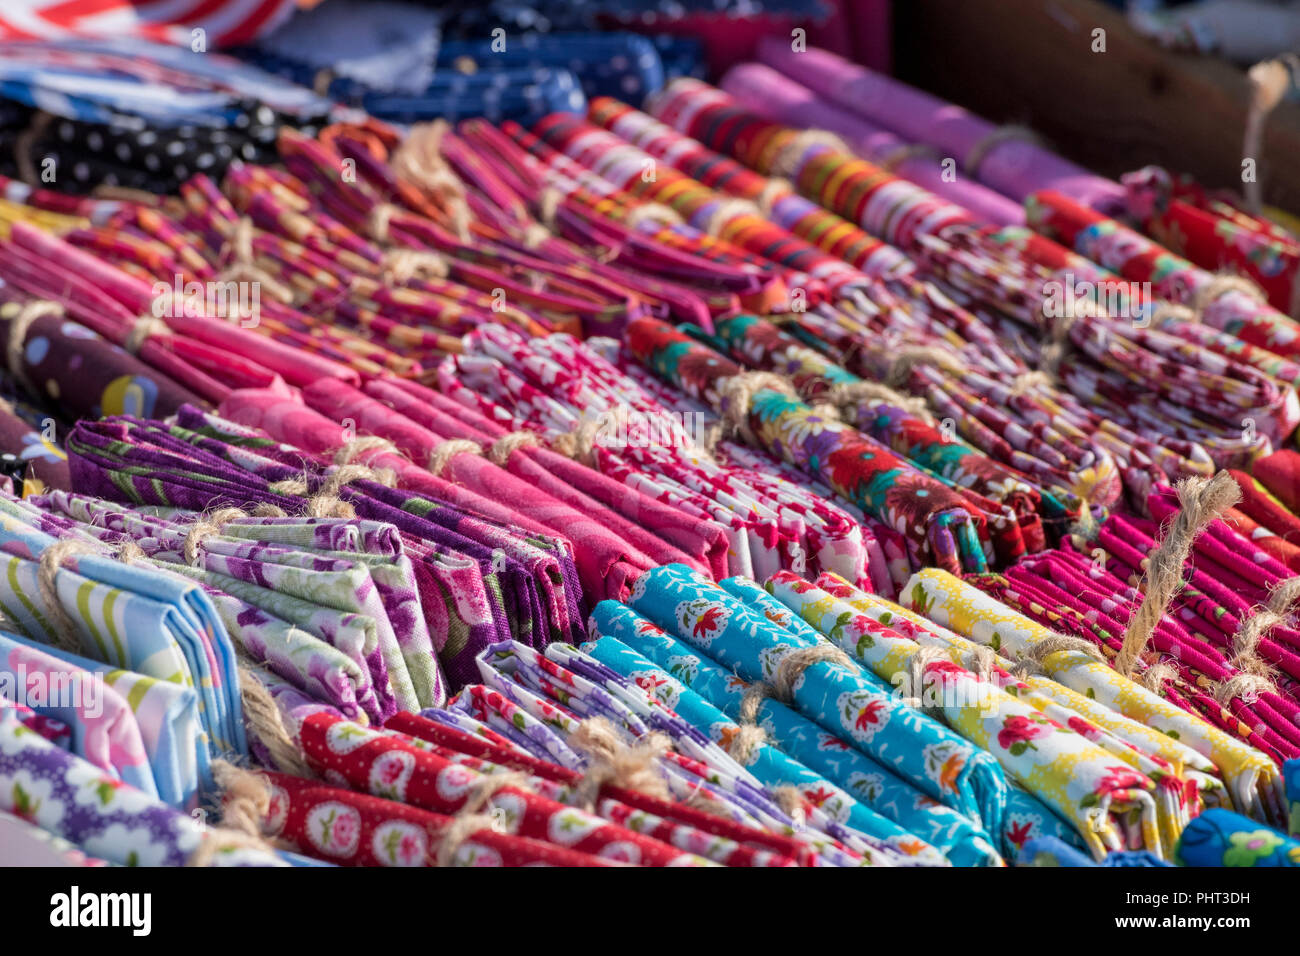 a selection of multi-coloured linen or cotton throws and cloths on sale on a rack at a market stall selling colourful linen. - Stock Image